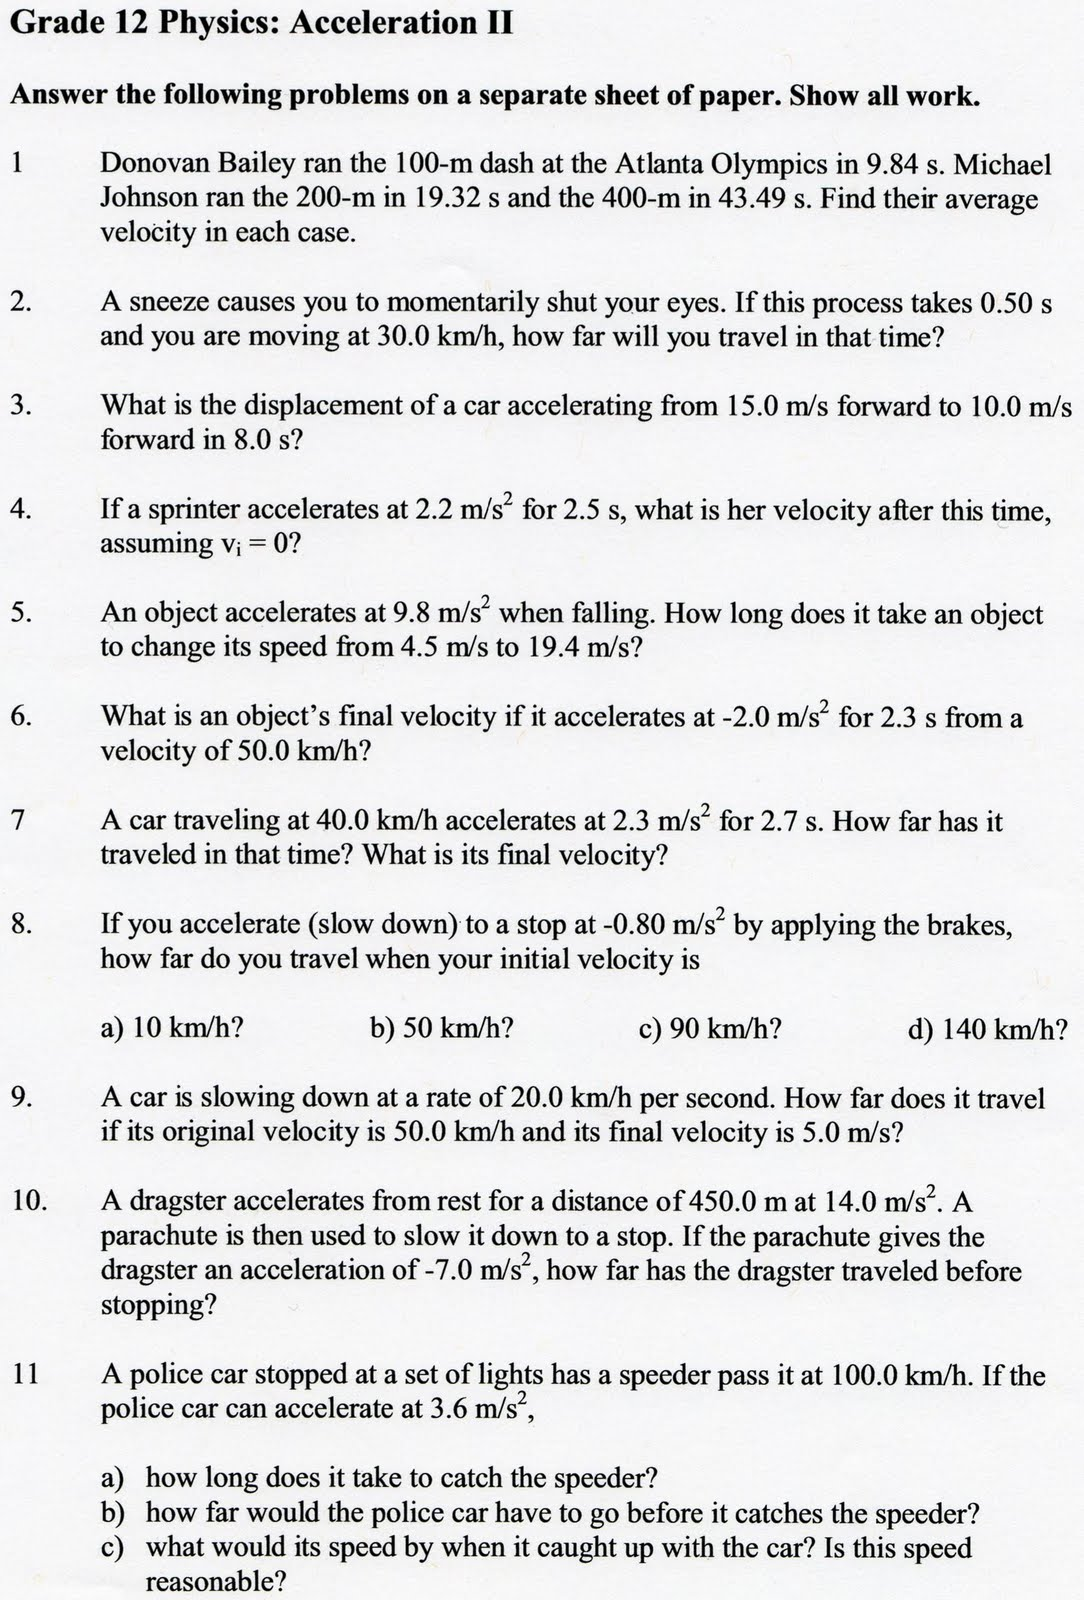 Worksheets Acceleration Worksheet With Answers velocity and acceleration calculation worksheets answer key